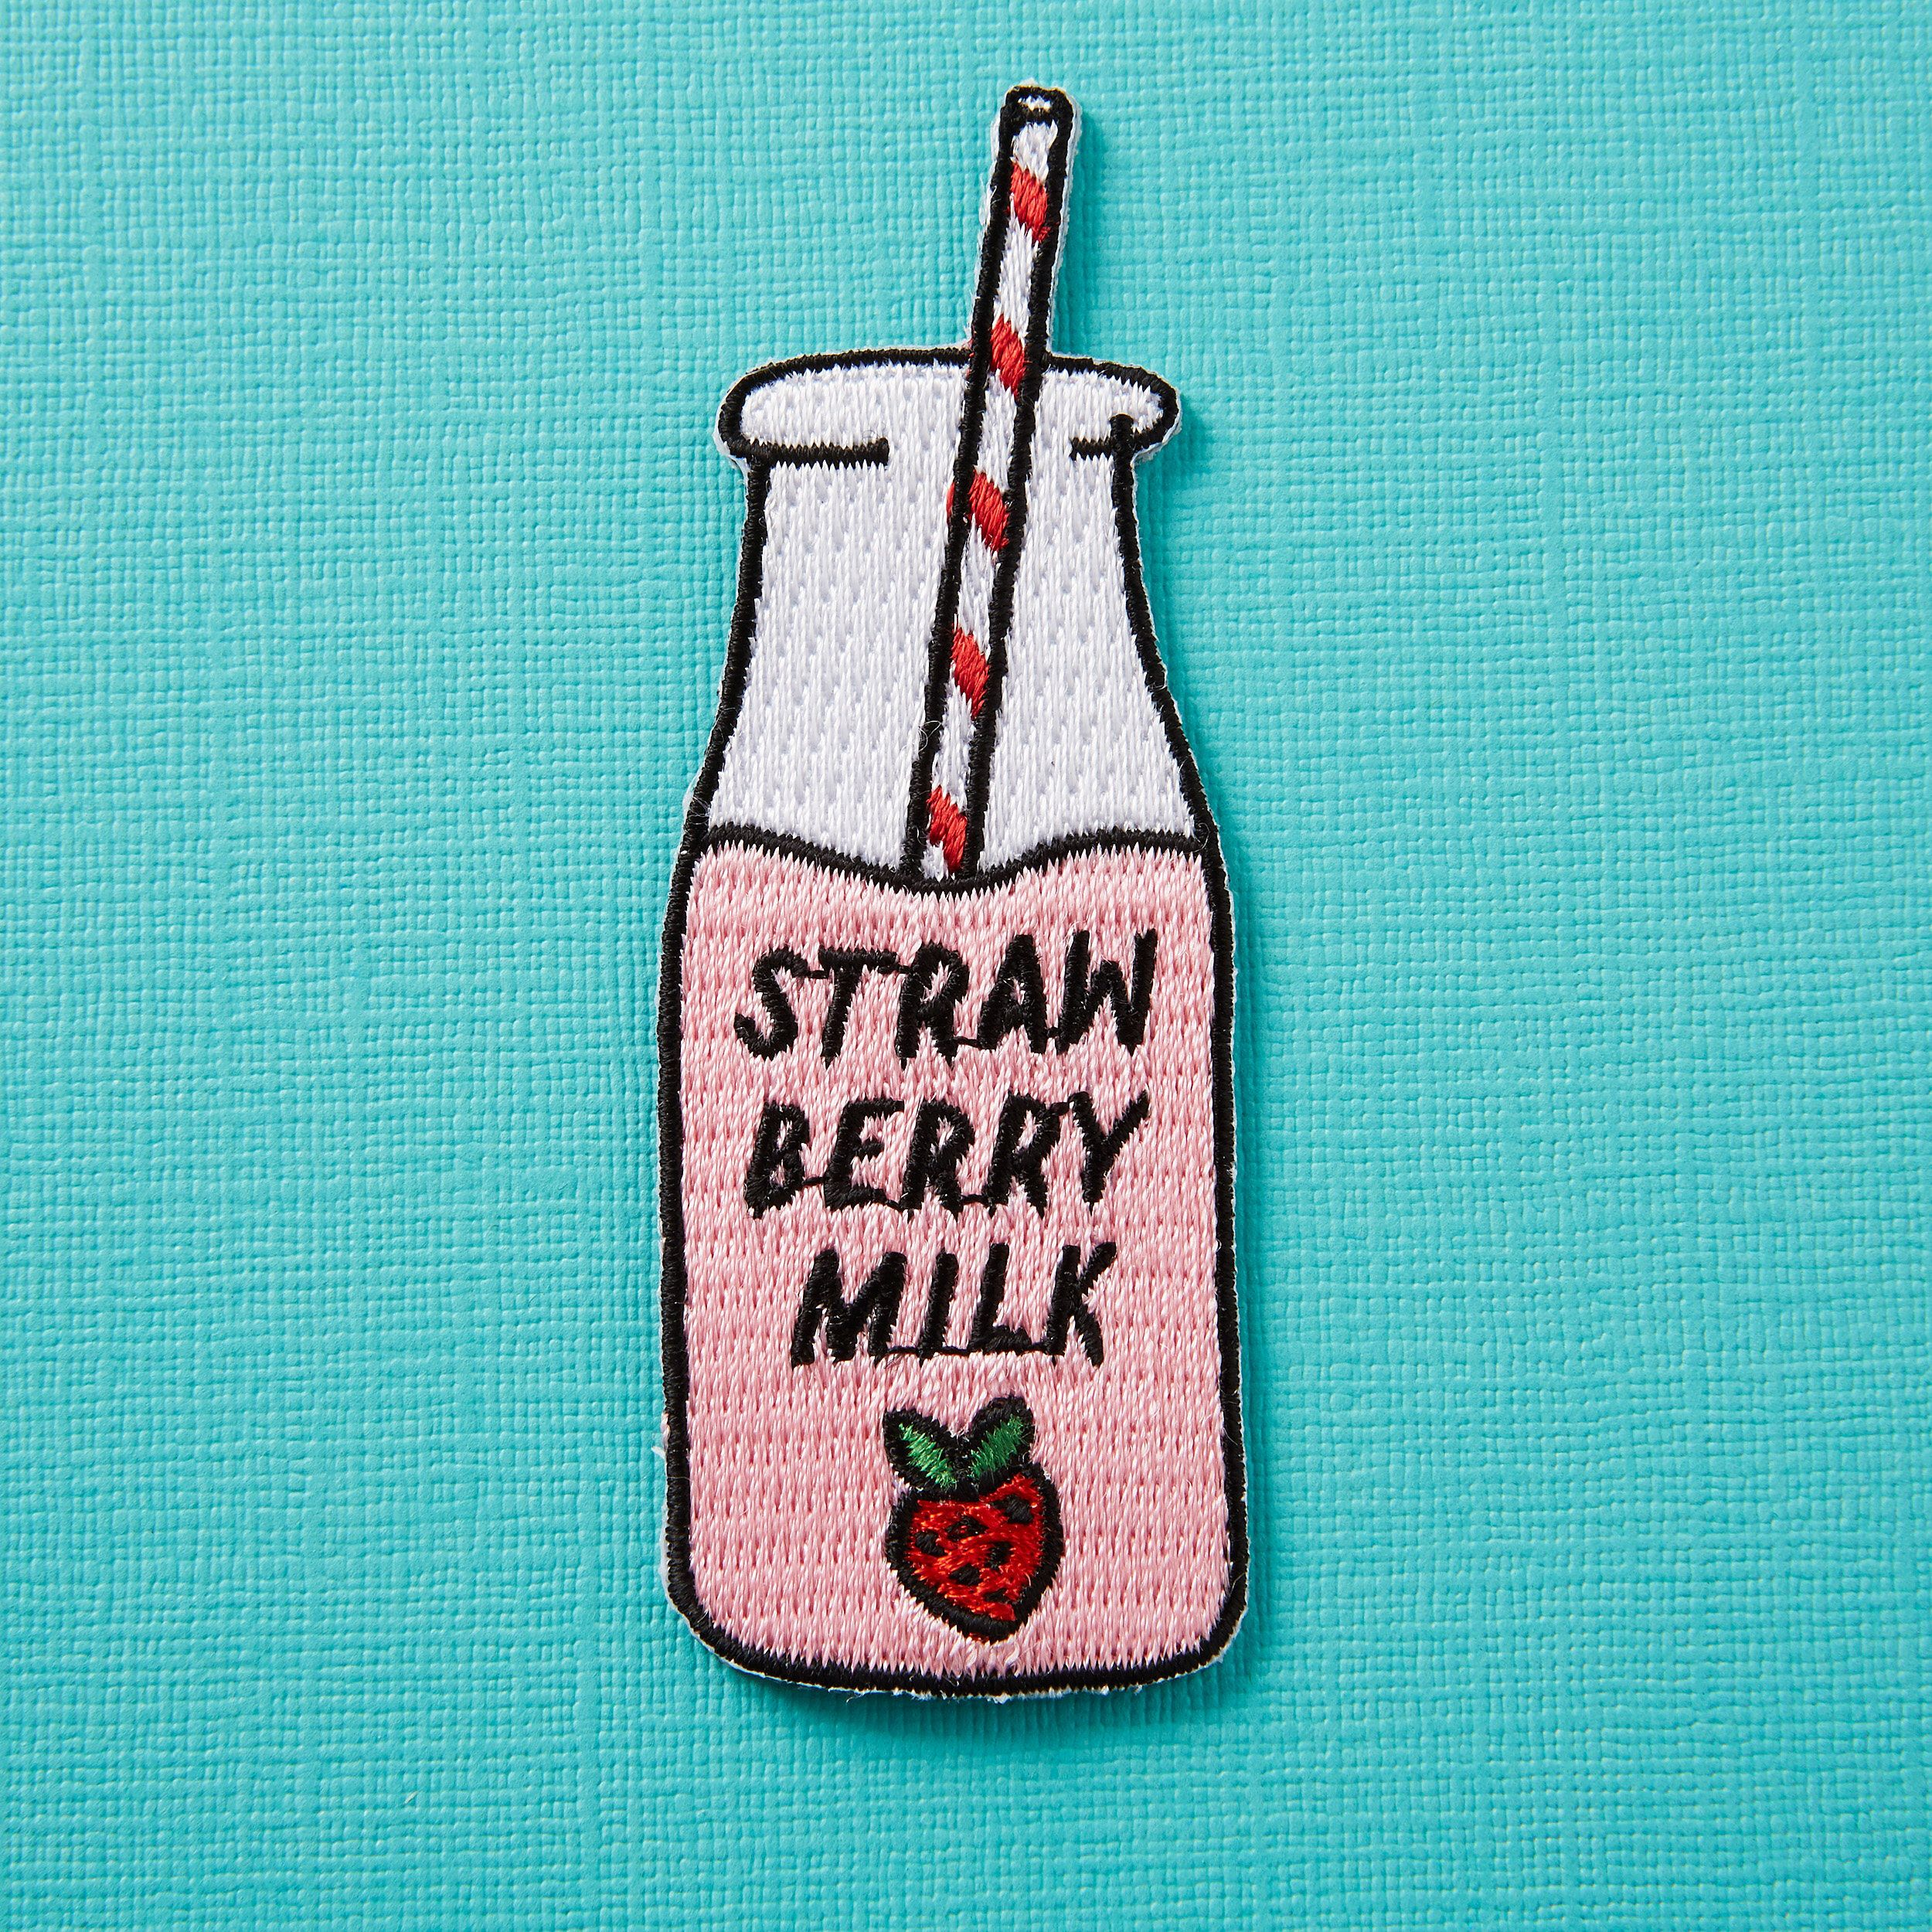 Strawberry Milk Embroidered Iron On Patch Milkshake Food Drink Patch Custom Denim Patch Game By Punkypins On E Iron On Patches Festival Patches Patches